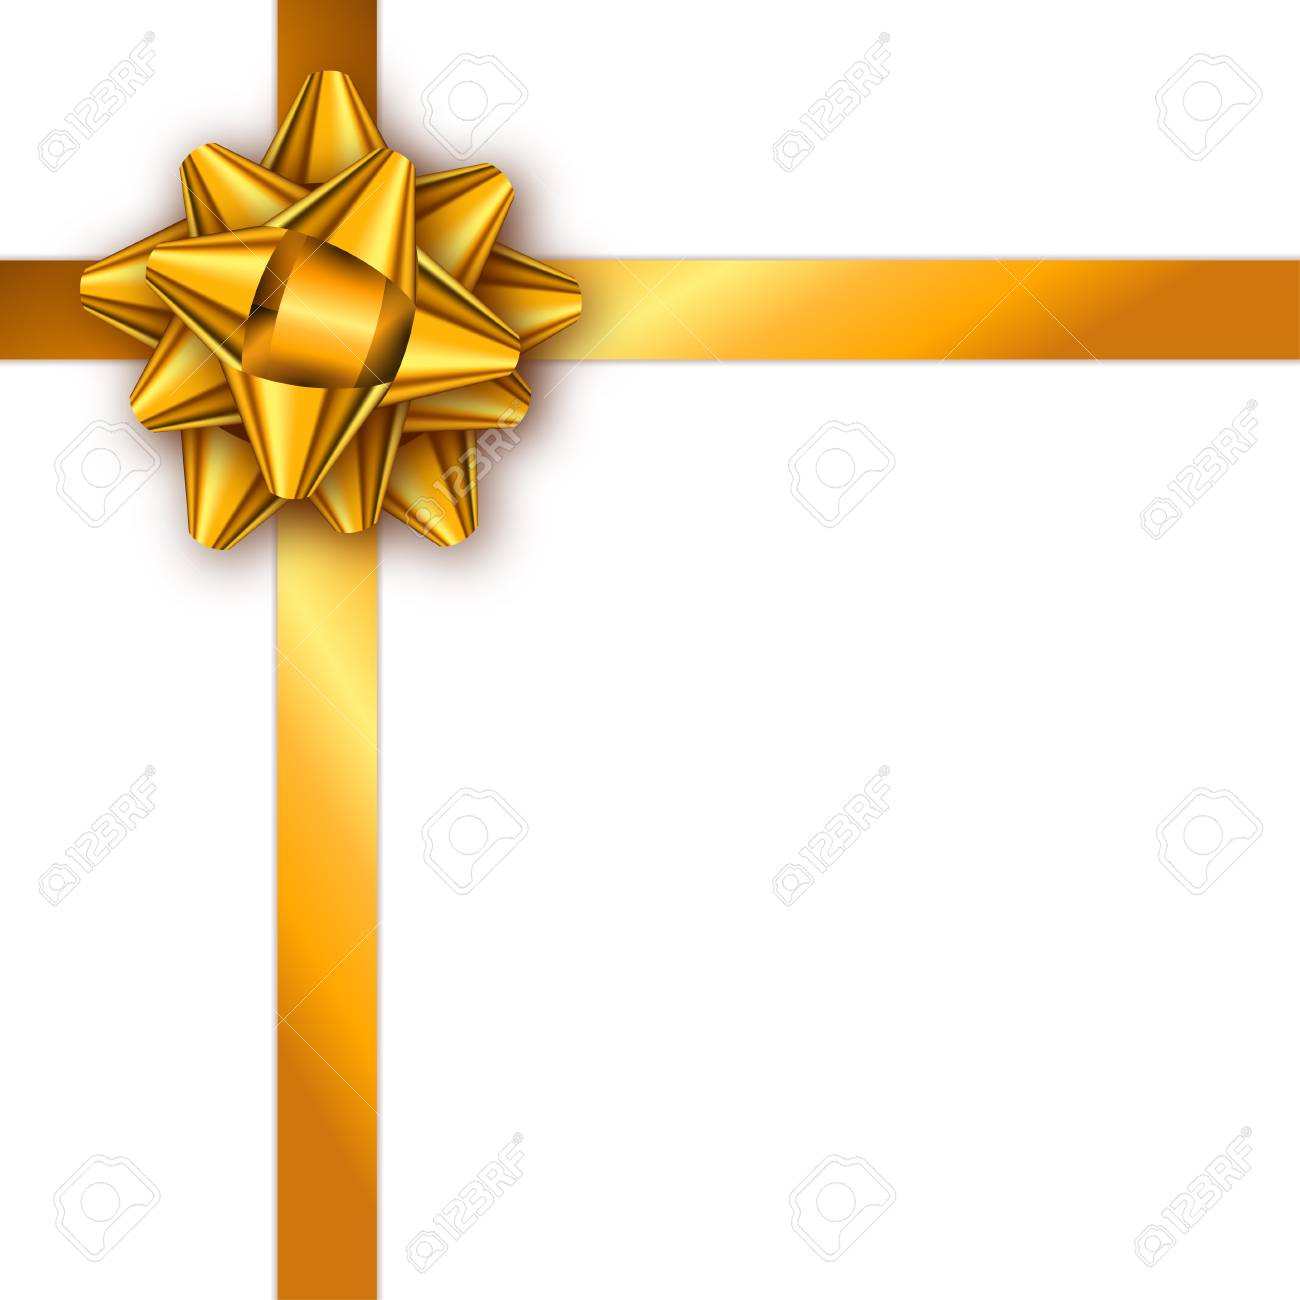 Holiday Gift Card With Golden Ribbon And Bow Template For A Business Banner